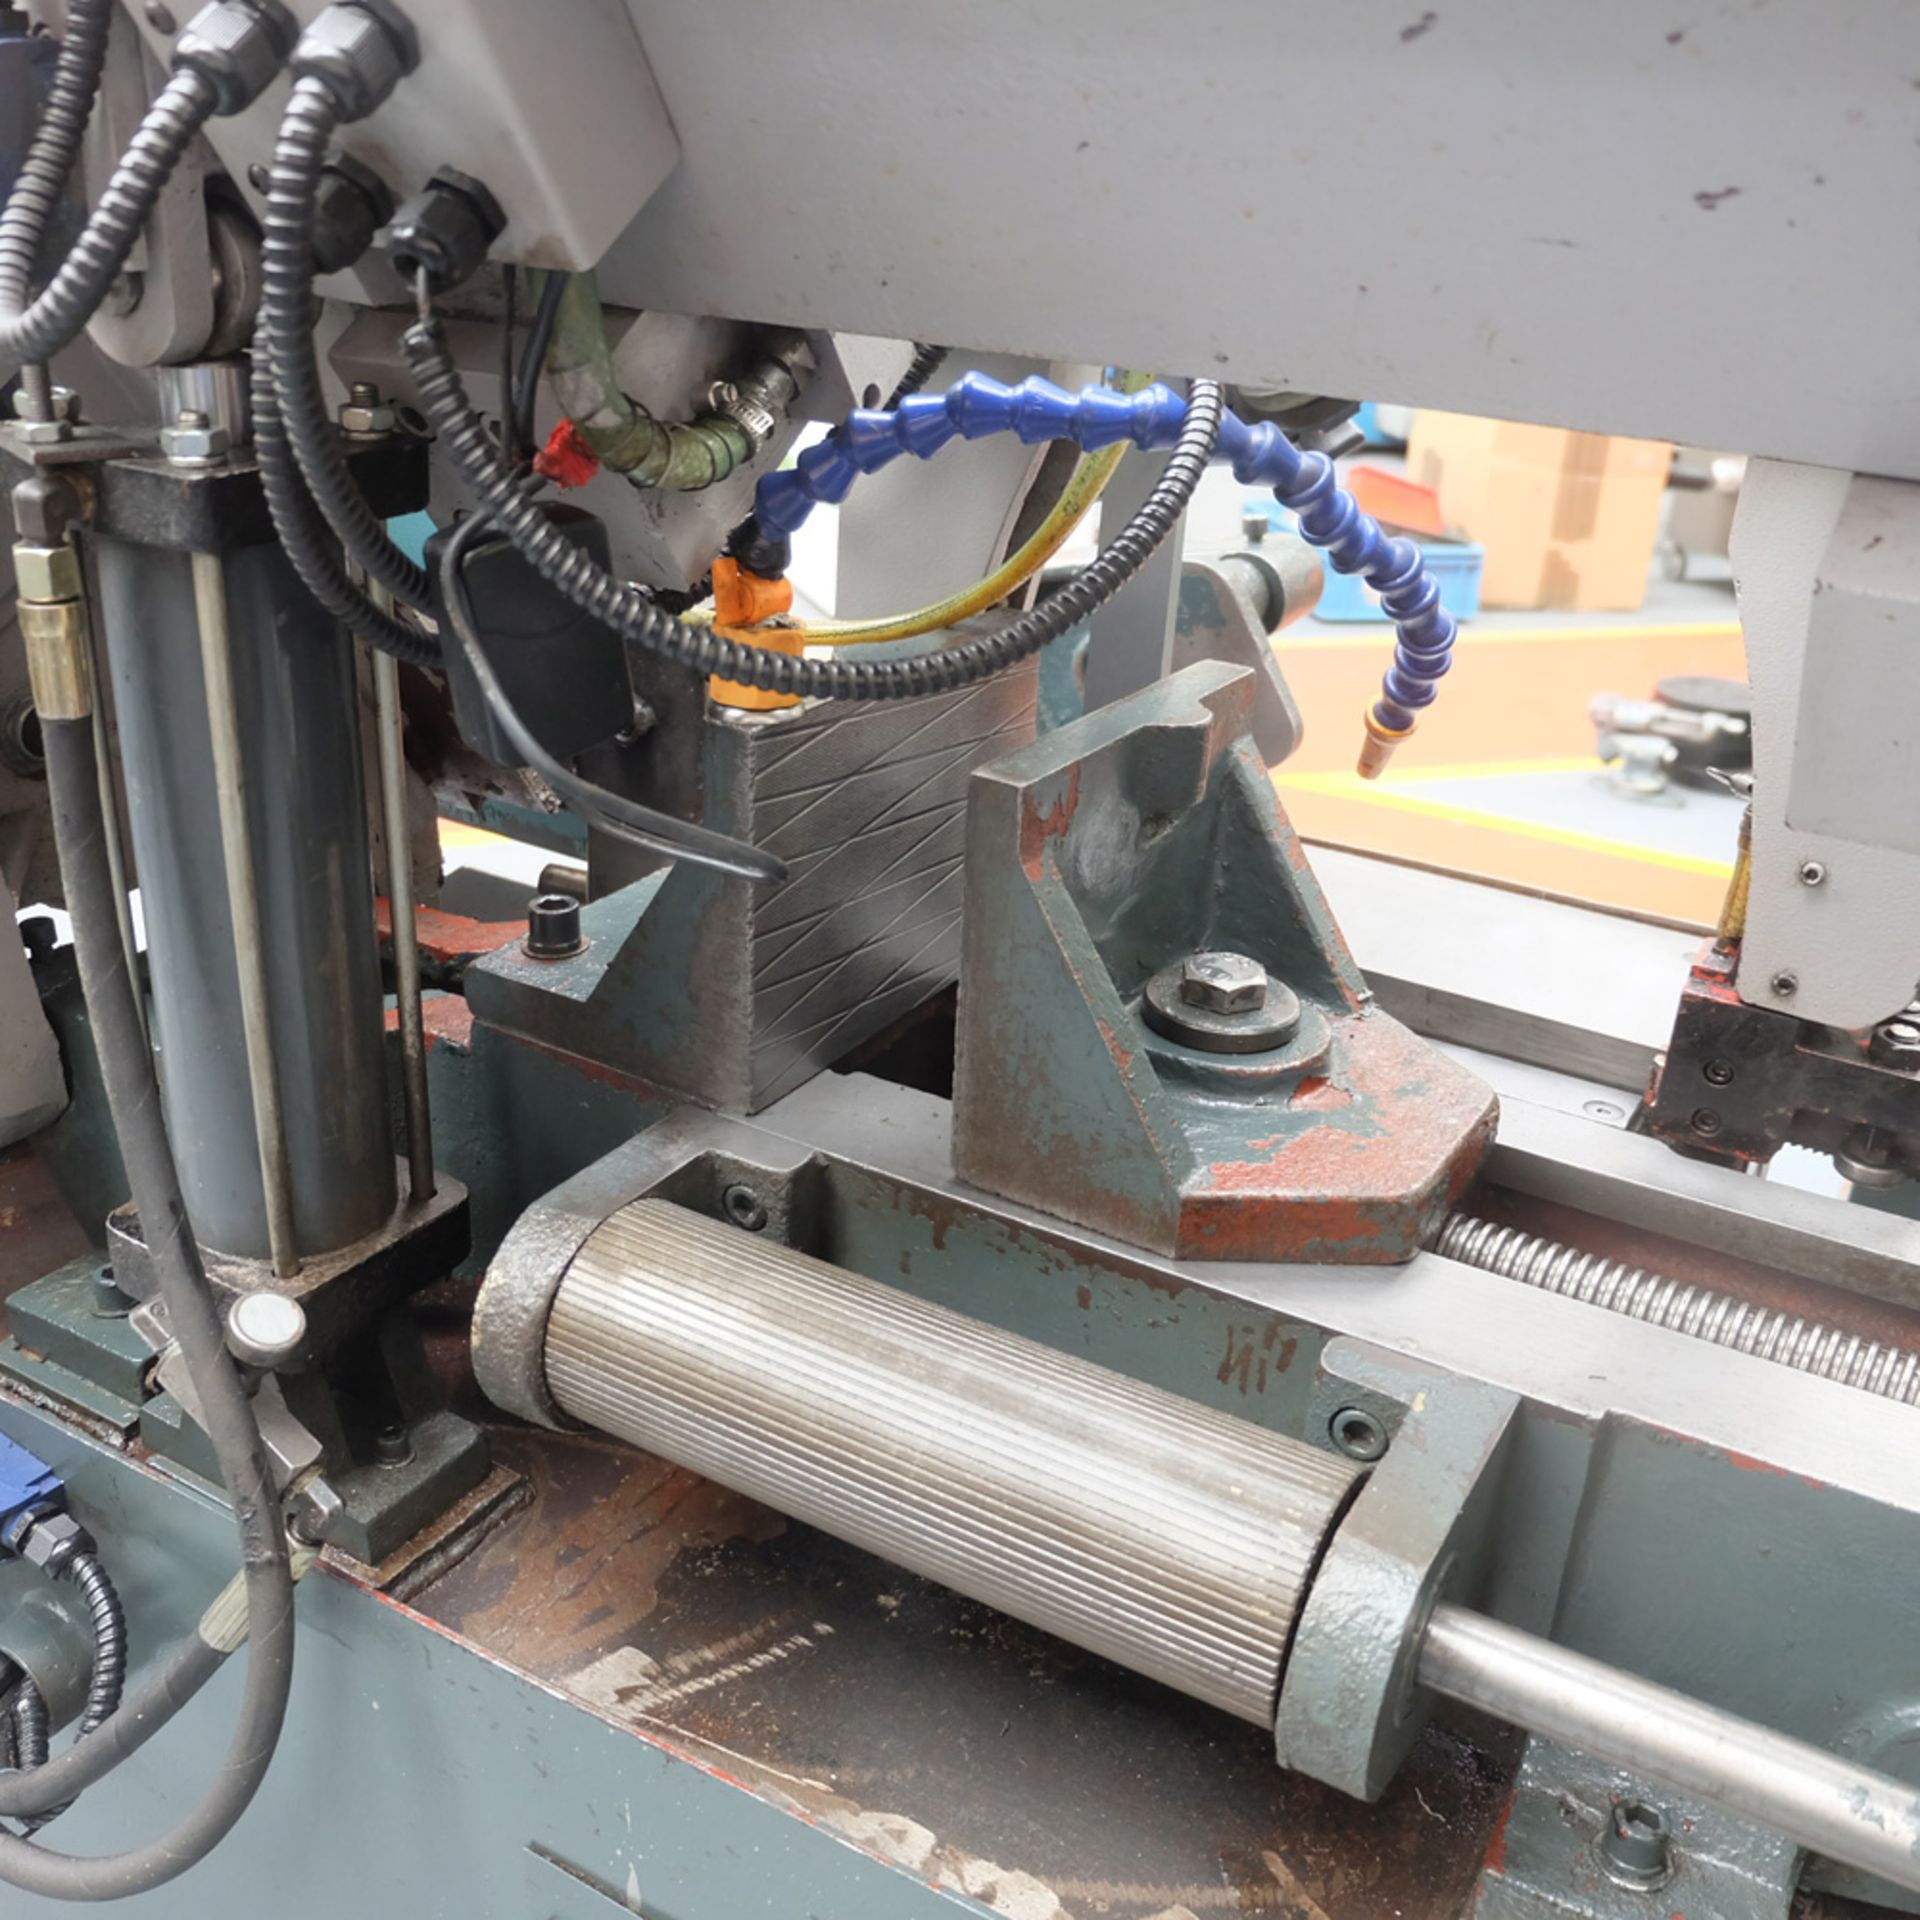 Julihuang By Addison Model S280 MKII Semi-Auto Horizontal Bandsaw. - Image 8 of 9